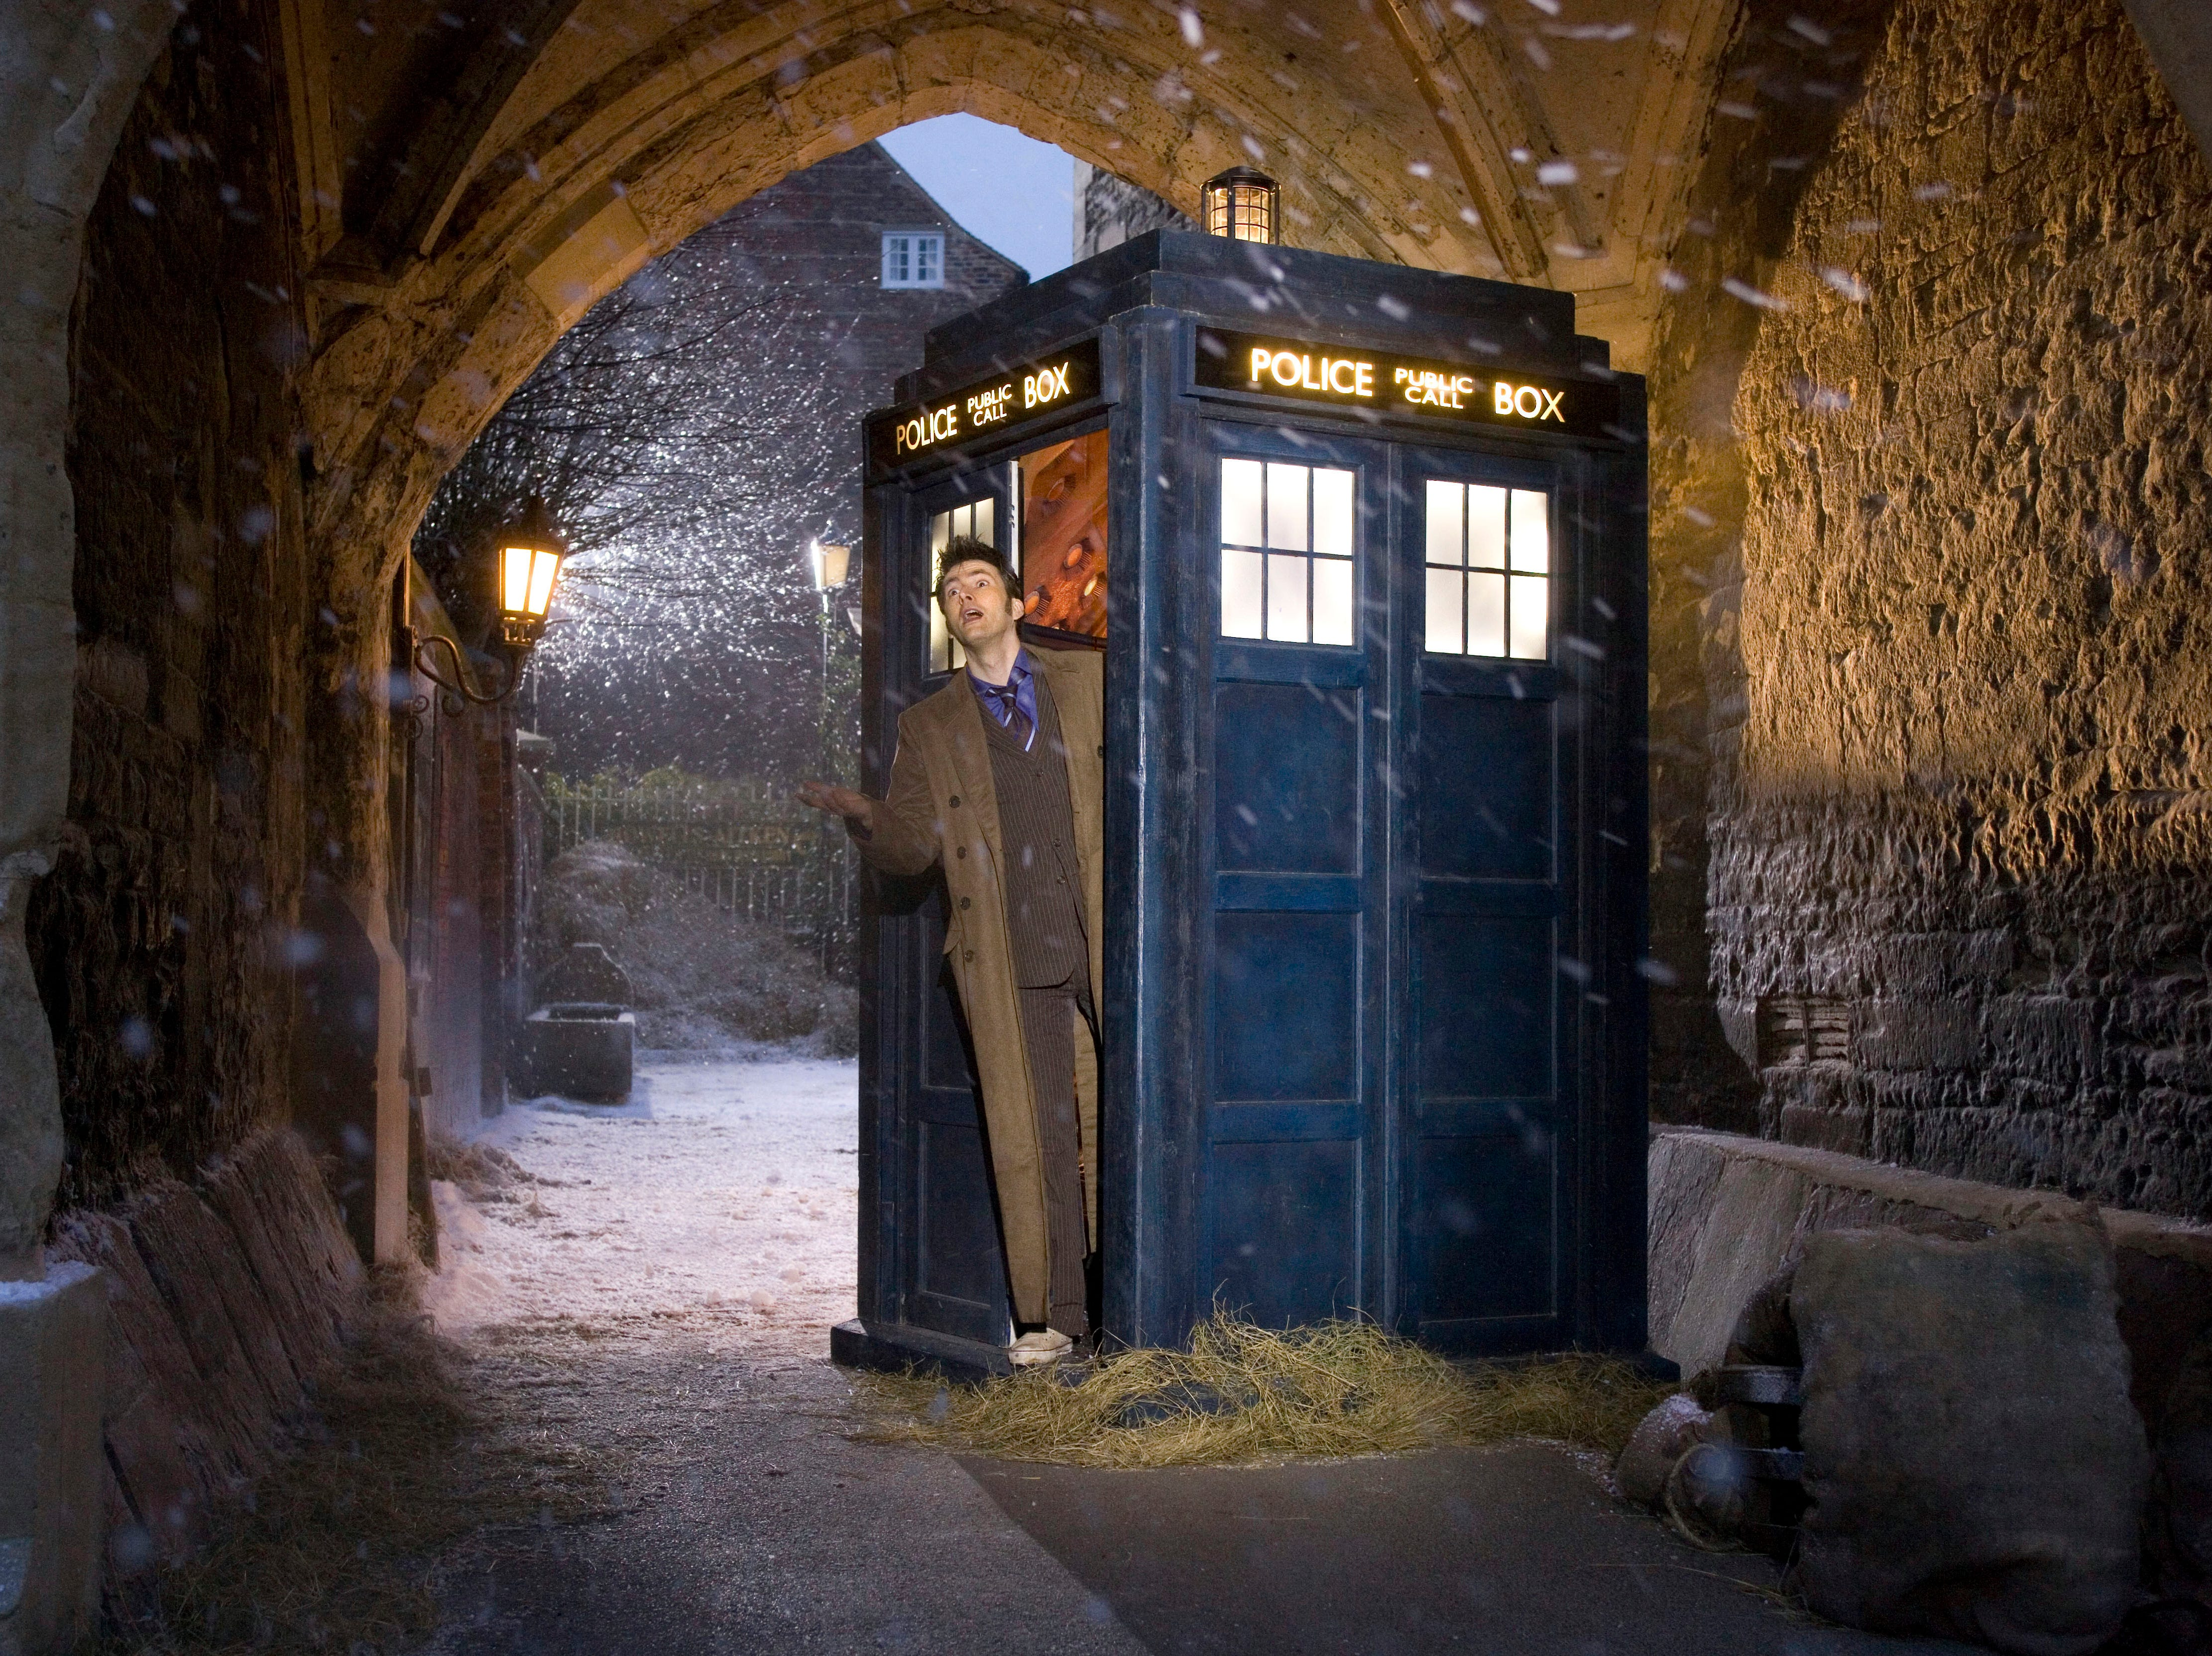 """The Doctor regenerated into David Tennant for the second rebooted season of the show. He spent three seasons as the Doctor and also reprised his role for """"Doctor Who"""" specials. Tennant went on to several prominent television roles, including the British """"Broadchurch"""" and Netflix's """"Jessica Jones,"""" and can be seen in the upcoming """"Camping"""" on HBO."""